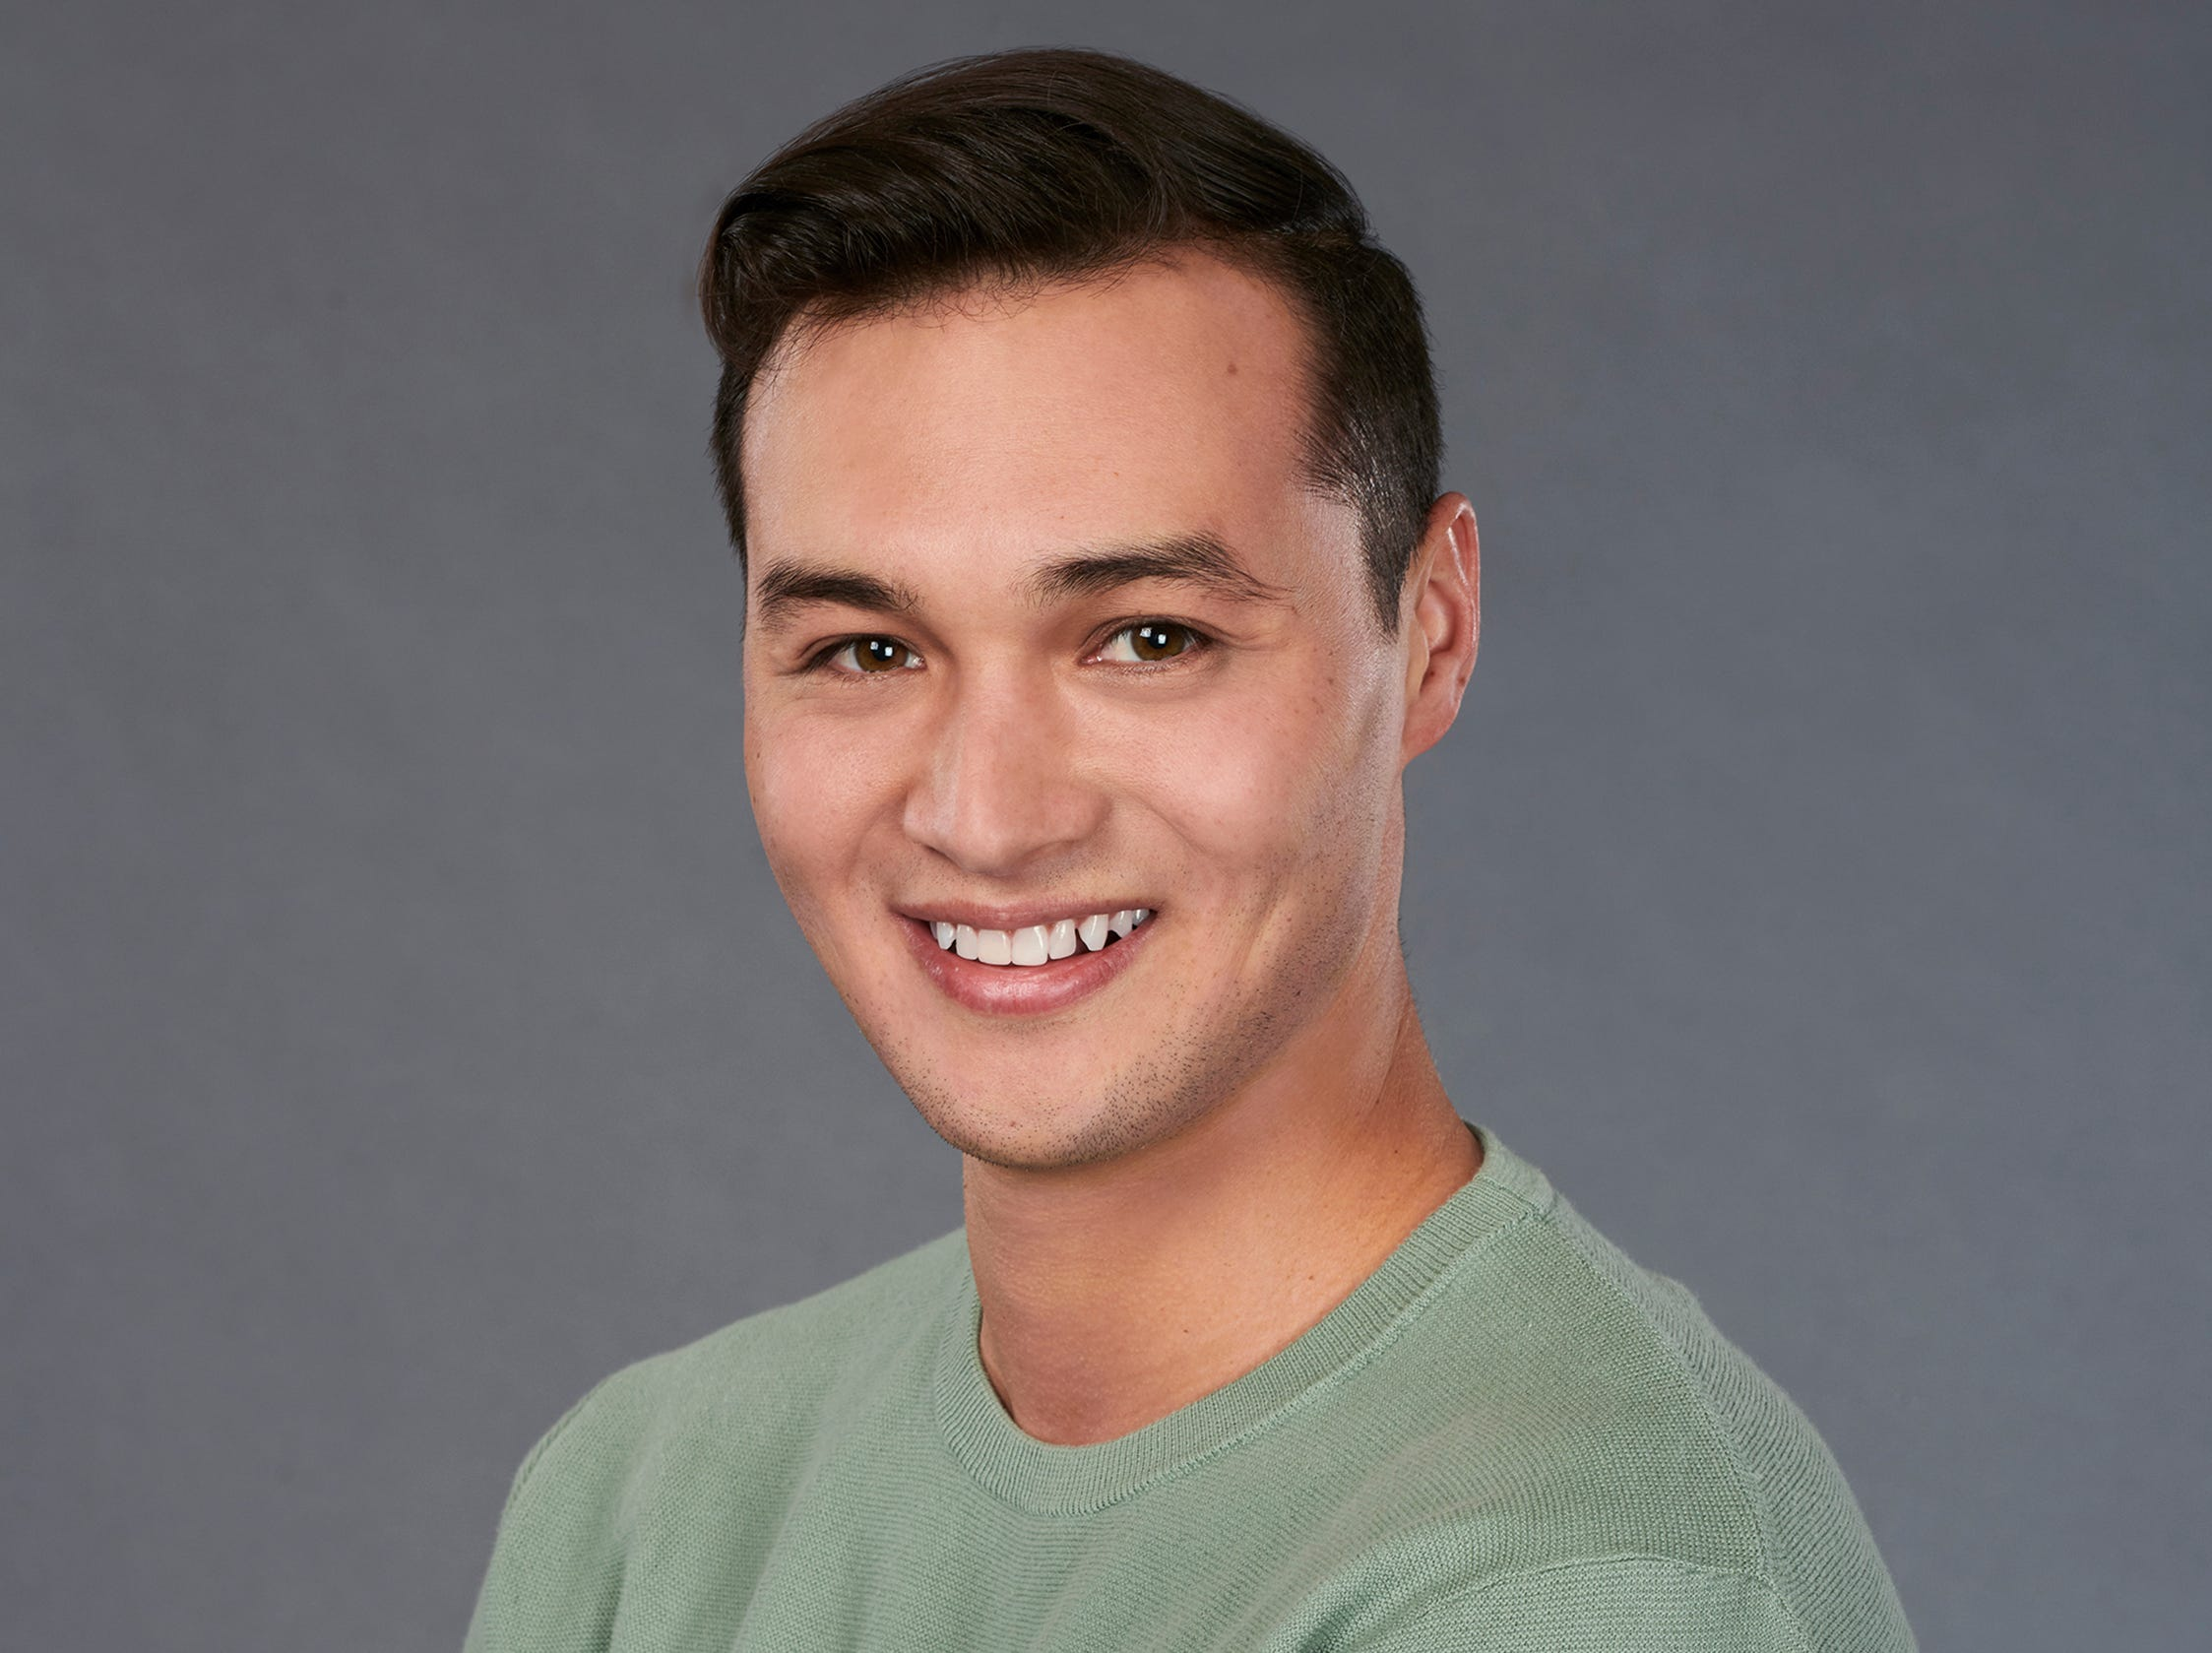 """The Bachelorette"" Season 23 contestant:  Connor J., 28, Newport Beach, California, sales manager"